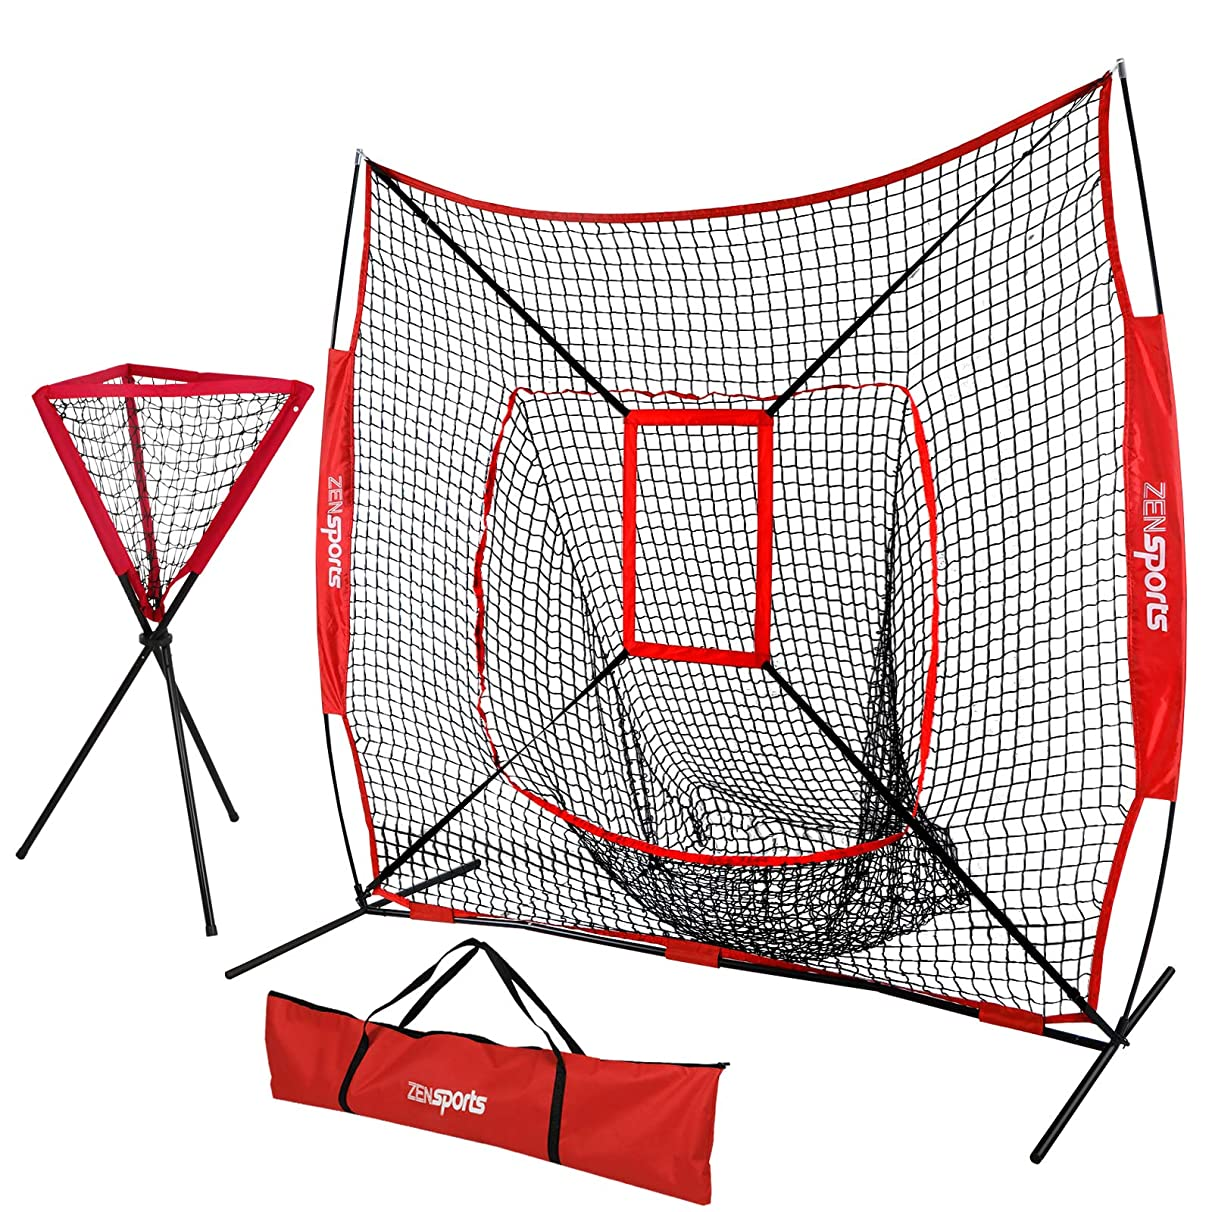 ZENsports 7' x 7' Baseball Softball Practice Hitting Pitching Net with Strike Zone Target and Bow Frame + Ball Caddy,Carry Bag,Great for All Skill Levels